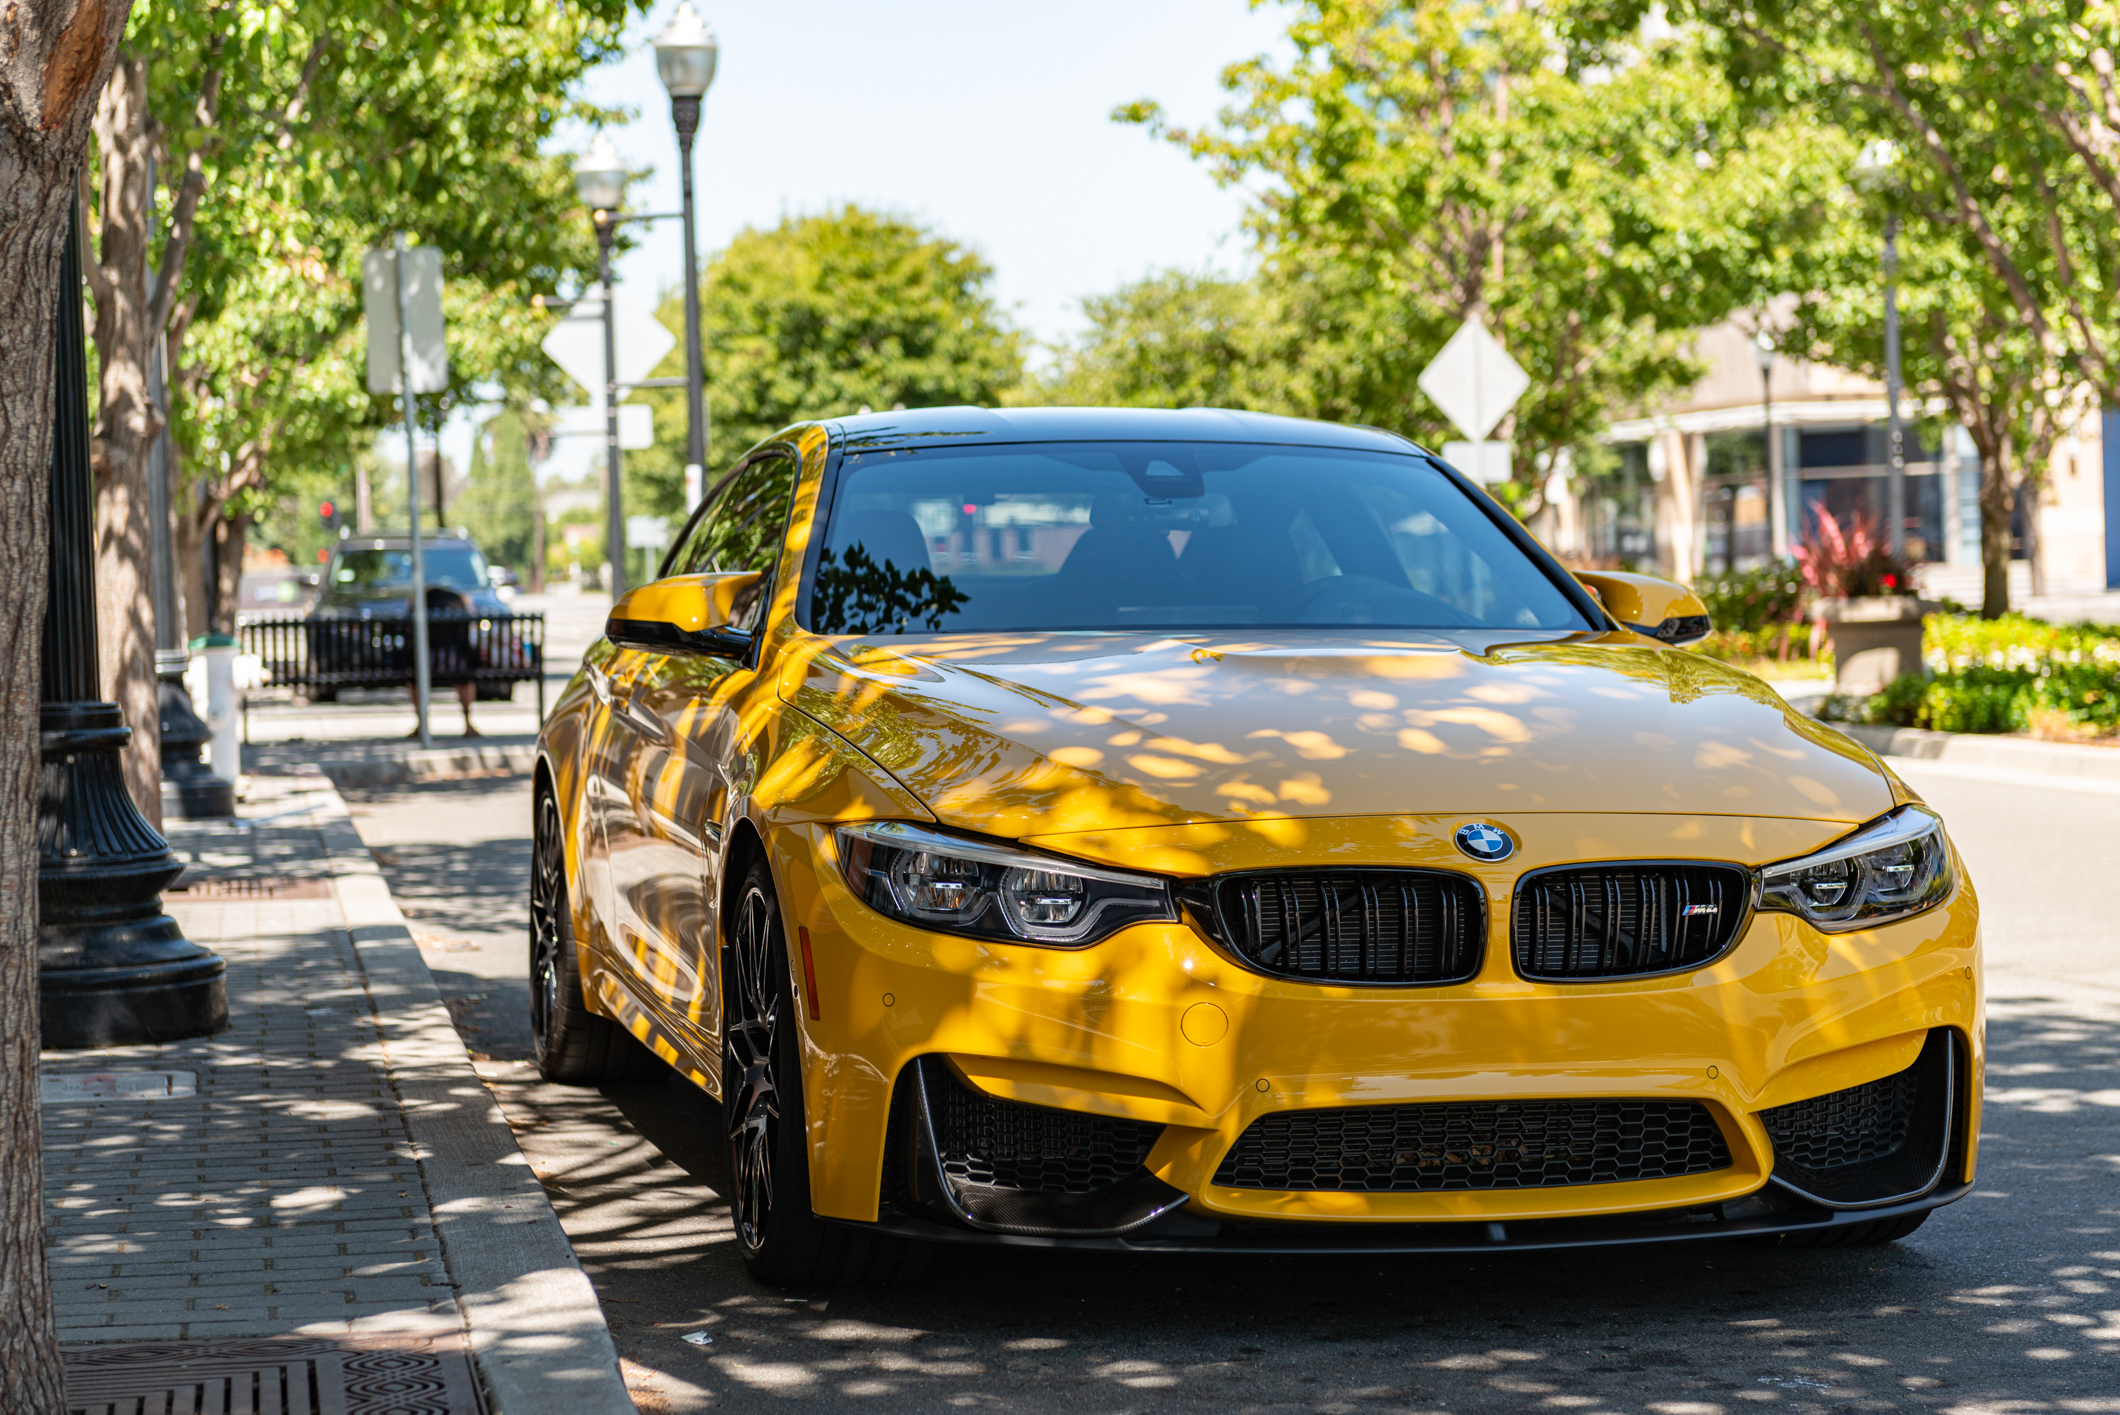 Photo of yellow BMW M4 in the shade